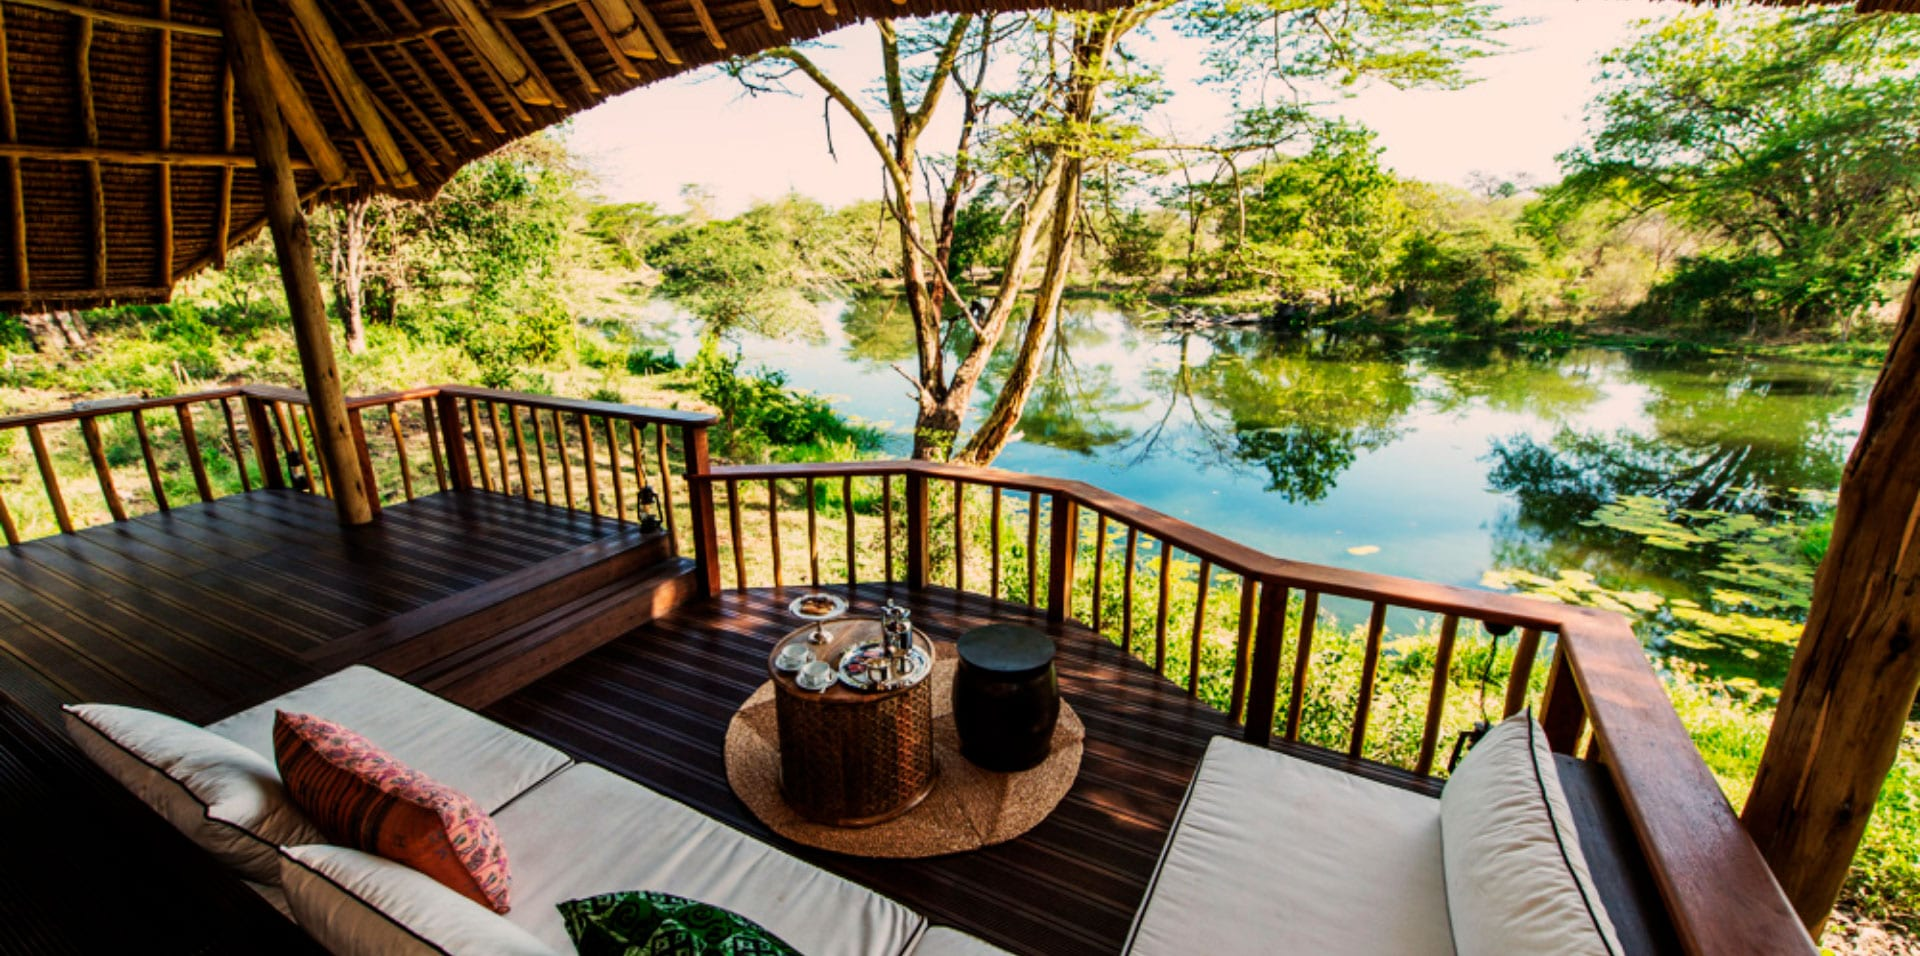 Viewing deck of the Luxury Tent suite at Finch Hattons Luxury Safari Camp Lodge